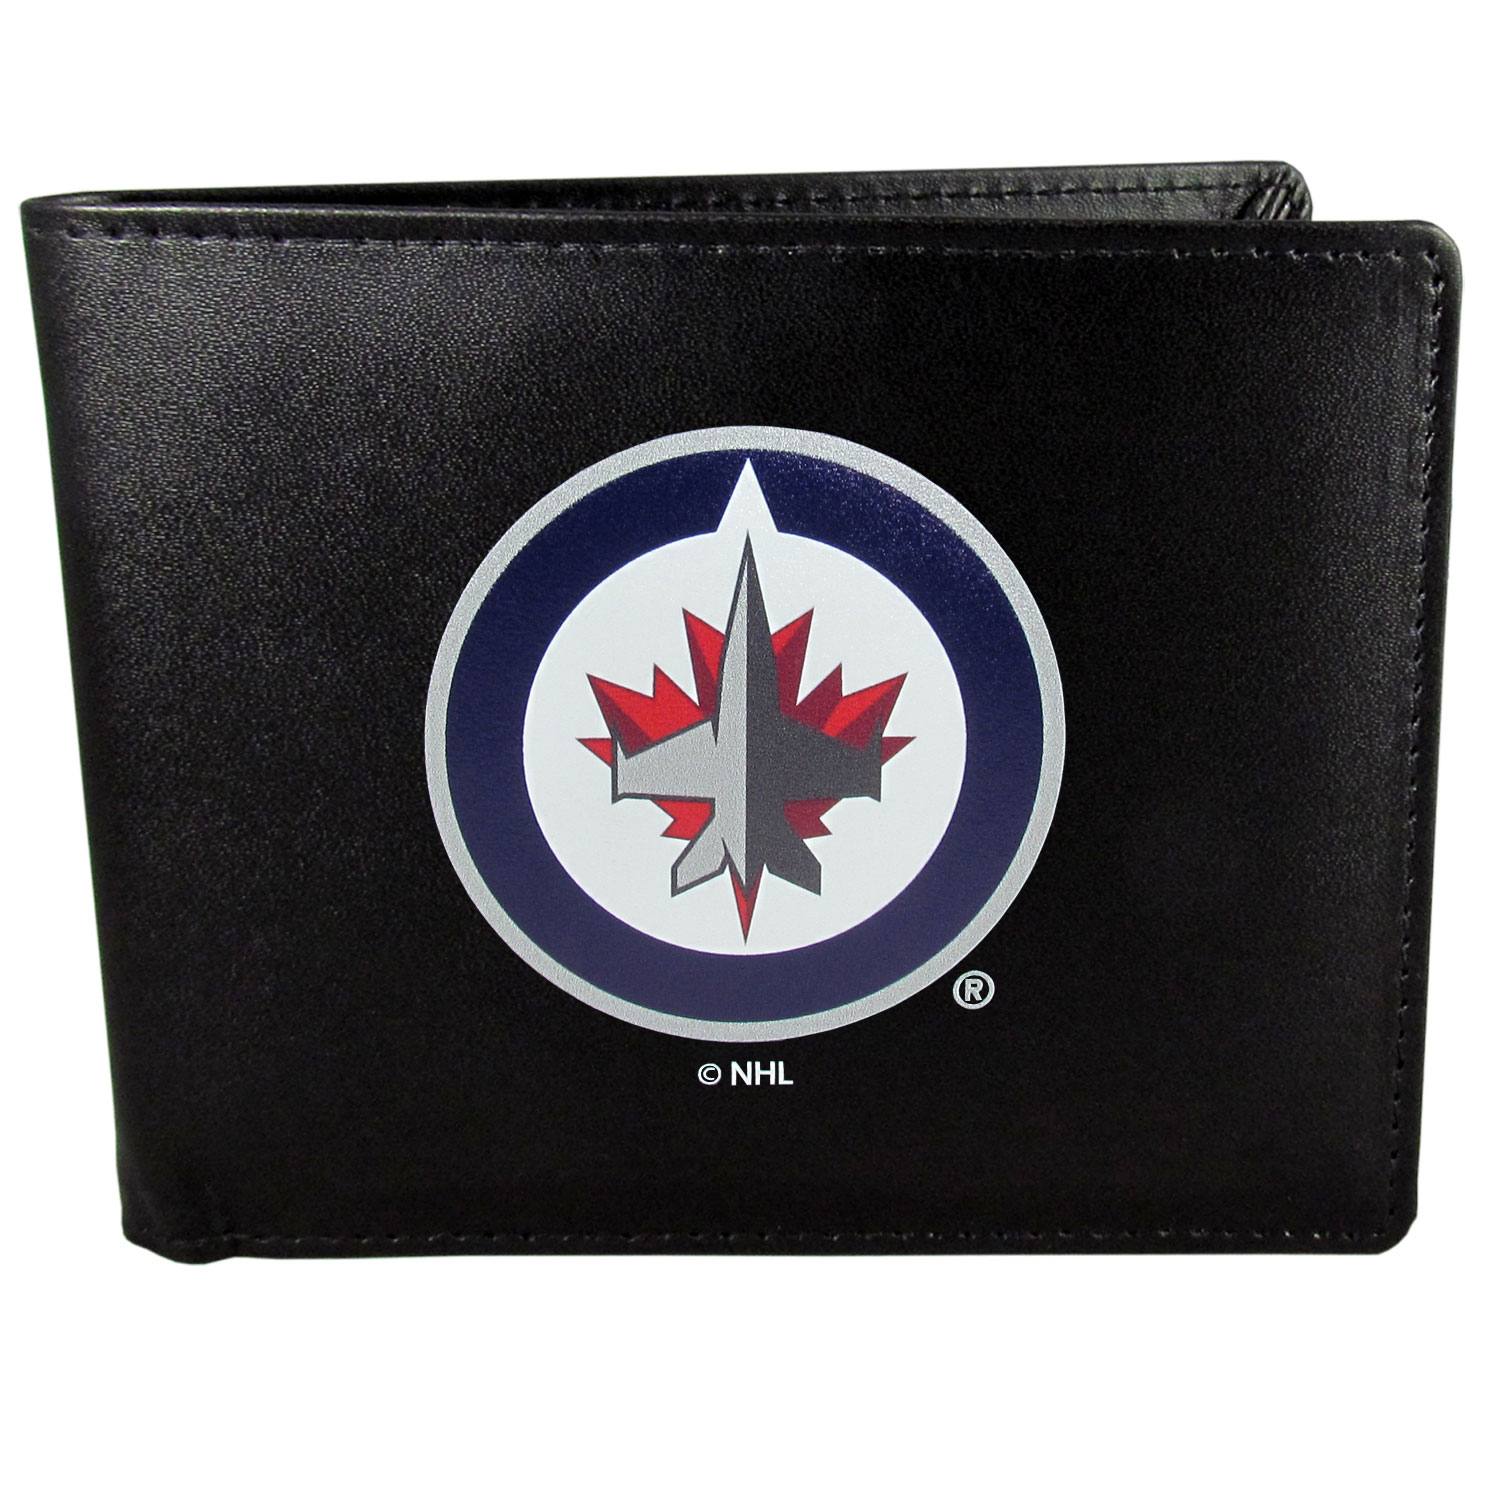 Winnipeg Jets™ Leather Bi-fold Wallet, Large Logo - Our classic fine leather bi-fold wallet is meticulously crafted with genuine leather that will age beautifully so you will have a quality wallet for years to come. The wallet opens to a large, billfold pocket and numerous credit card slots and has a convenient windowed ID slot. The front of the wallet features an extra large Winnipeg Jets™ printed logo.